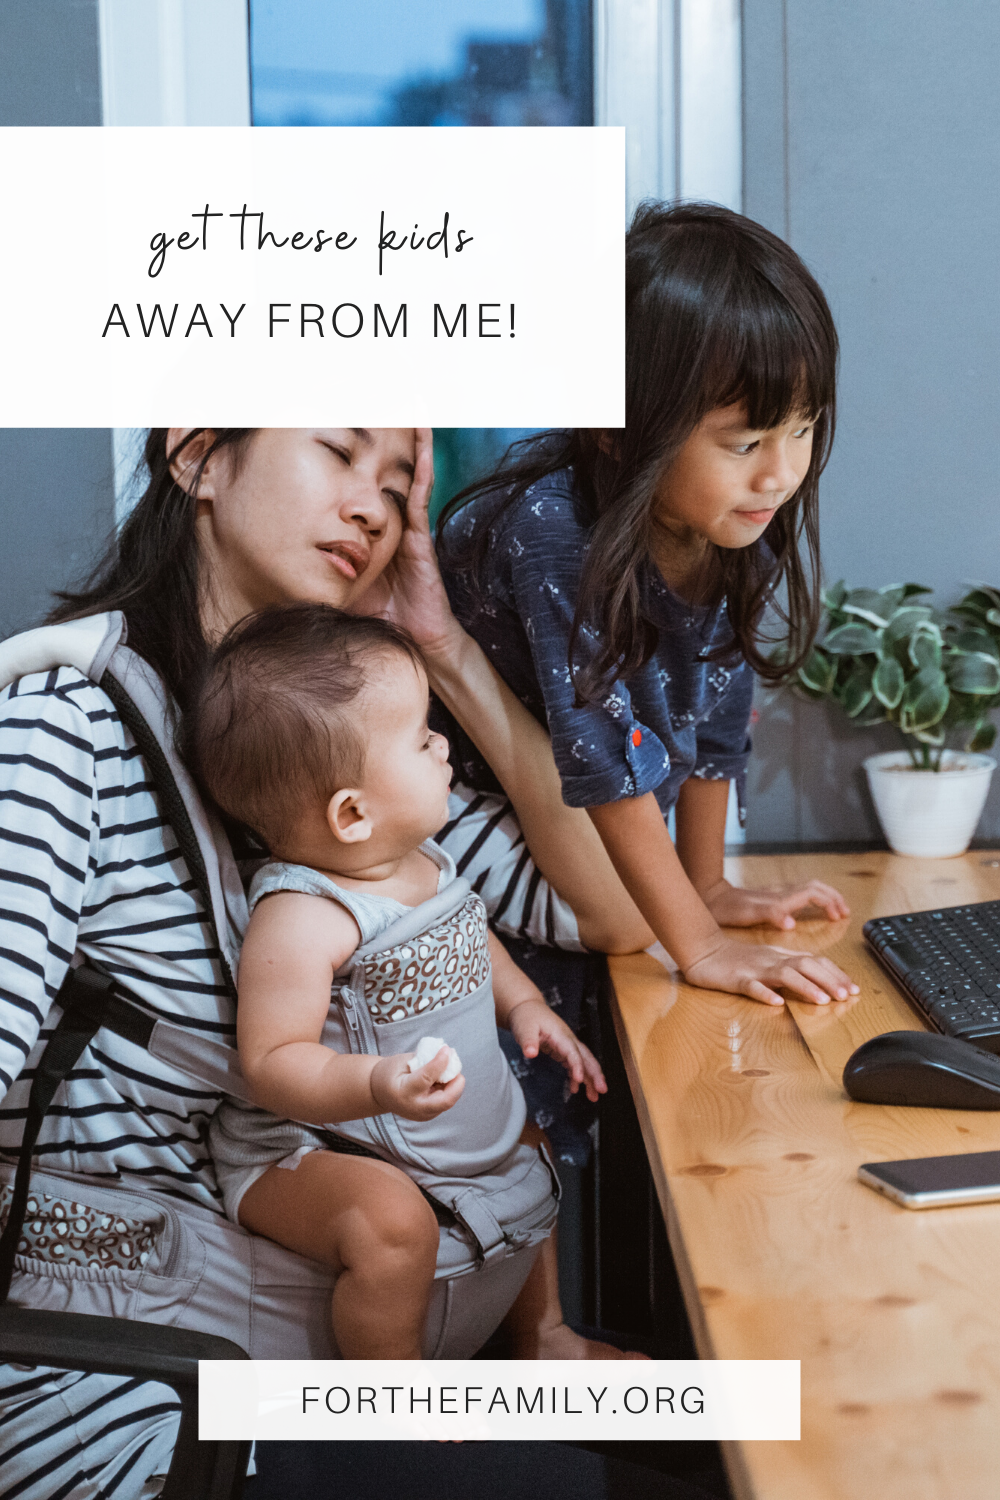 If we are being honest, being a mom can get so overwhelming that we crave moments alone. While staying at home, we may feel this more now than ever. But this season can be a great blessing that we can savor, enjoy, and embrace!